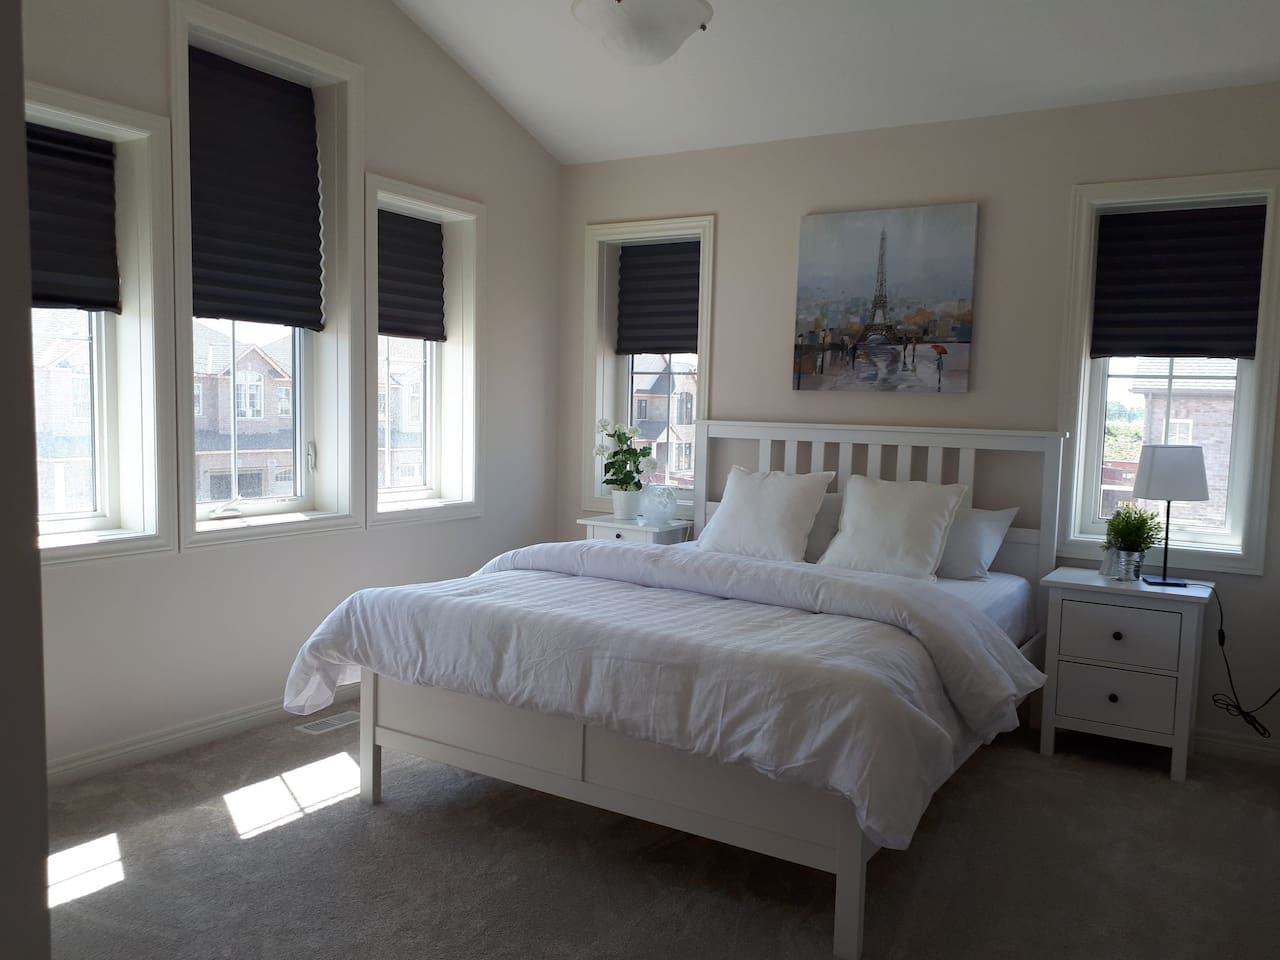 Gorgeous bedroom. The blinds pull down for black out effect!